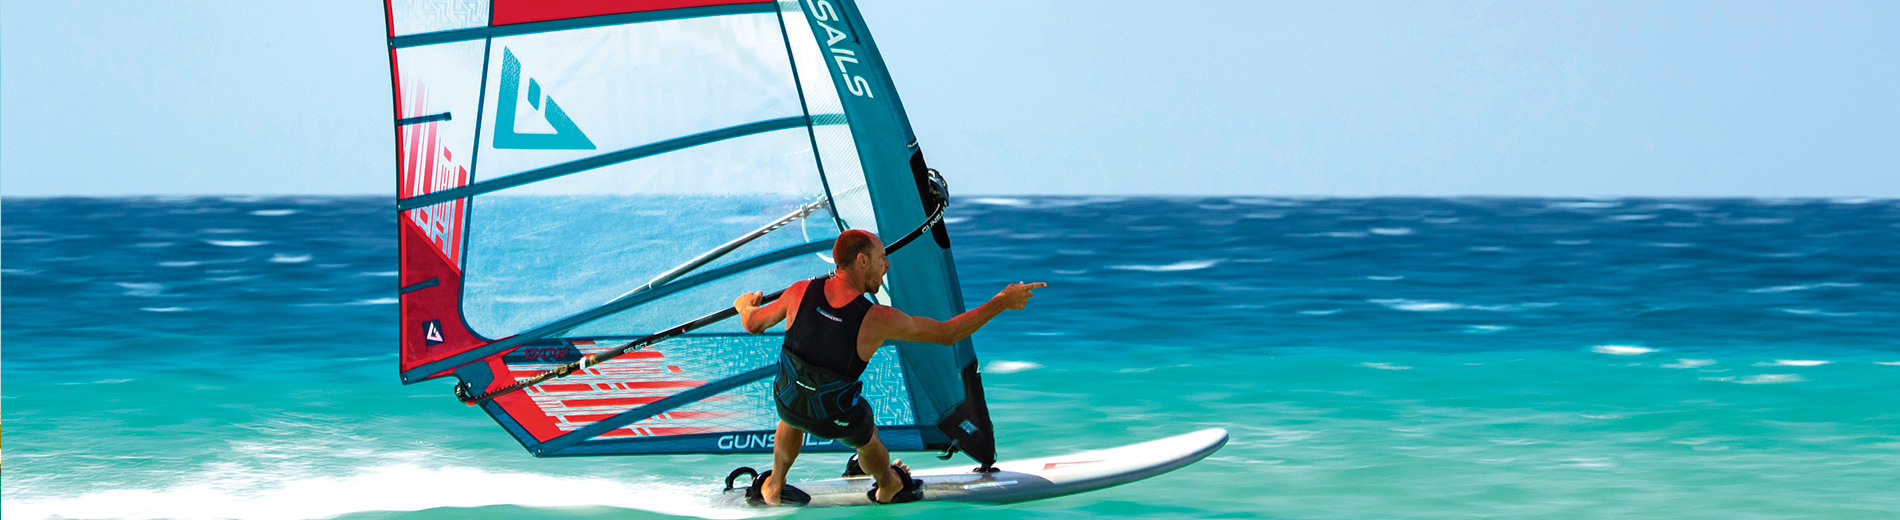 GUNSAILS | Pieter Bijl - Defi Wind Rider, PWA Worldtour, Slalom and Foil Windsurfing